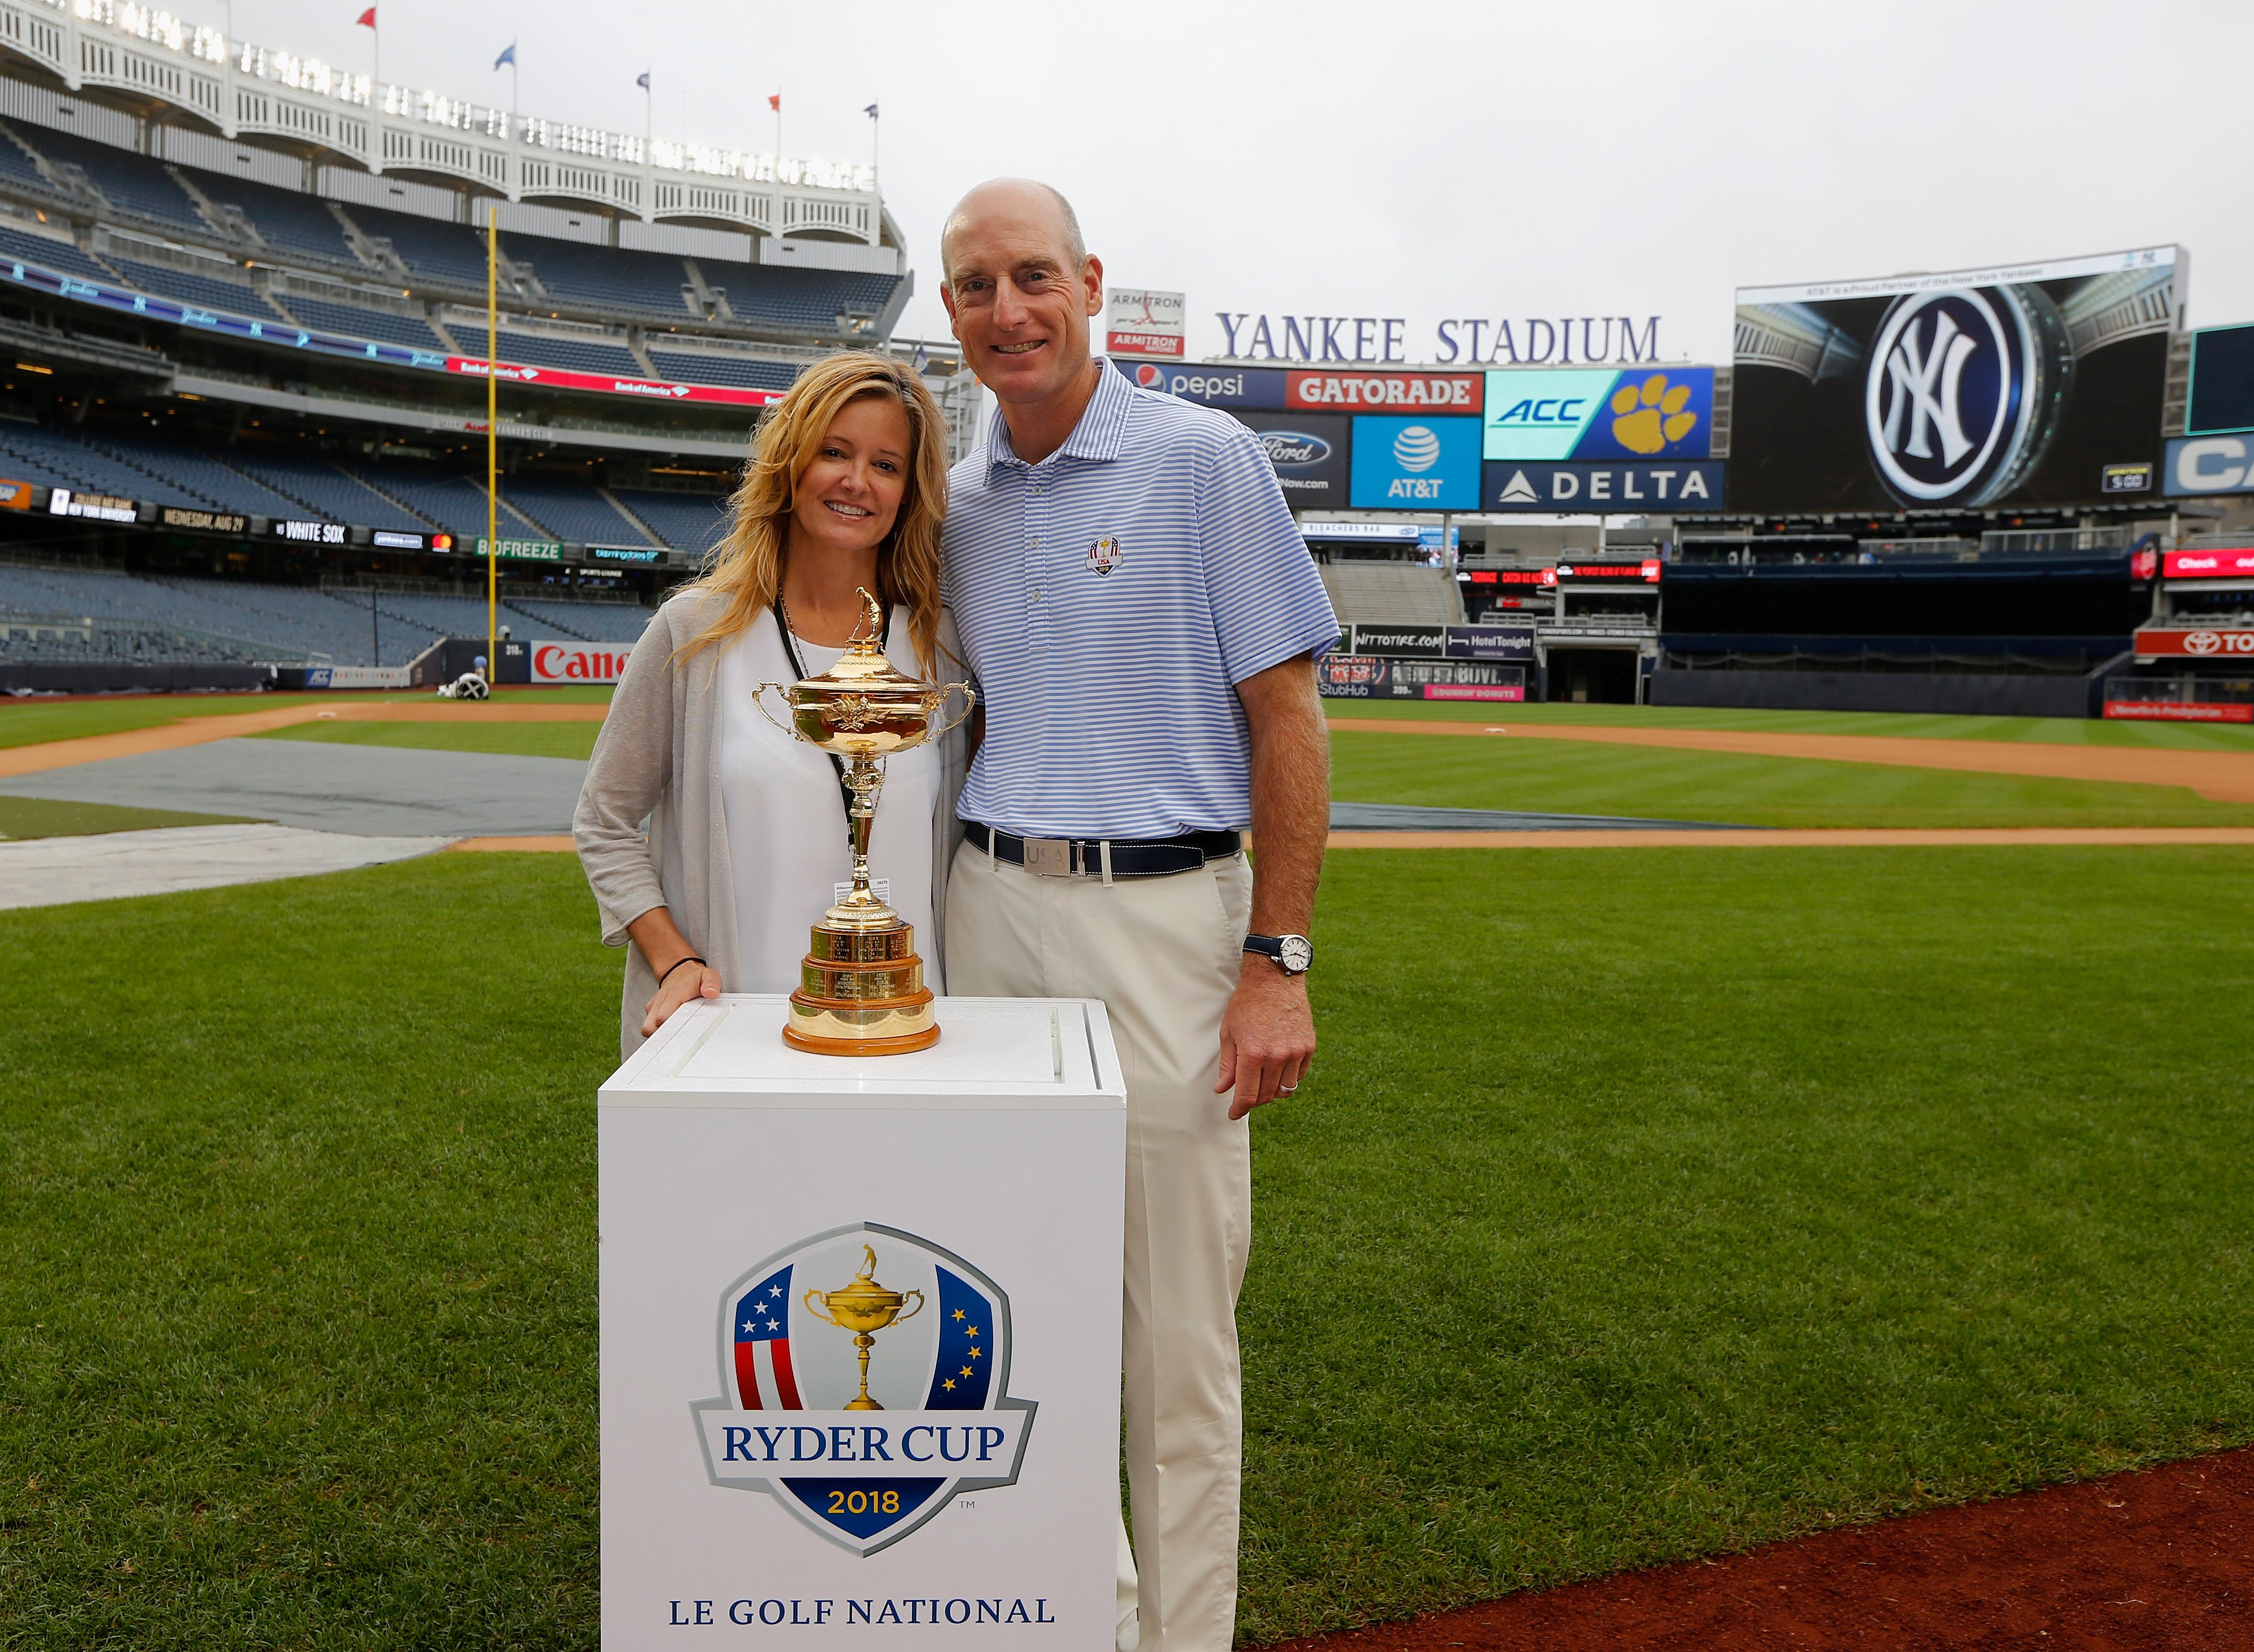 Jim and Tabitha pose with the Ryder Cup